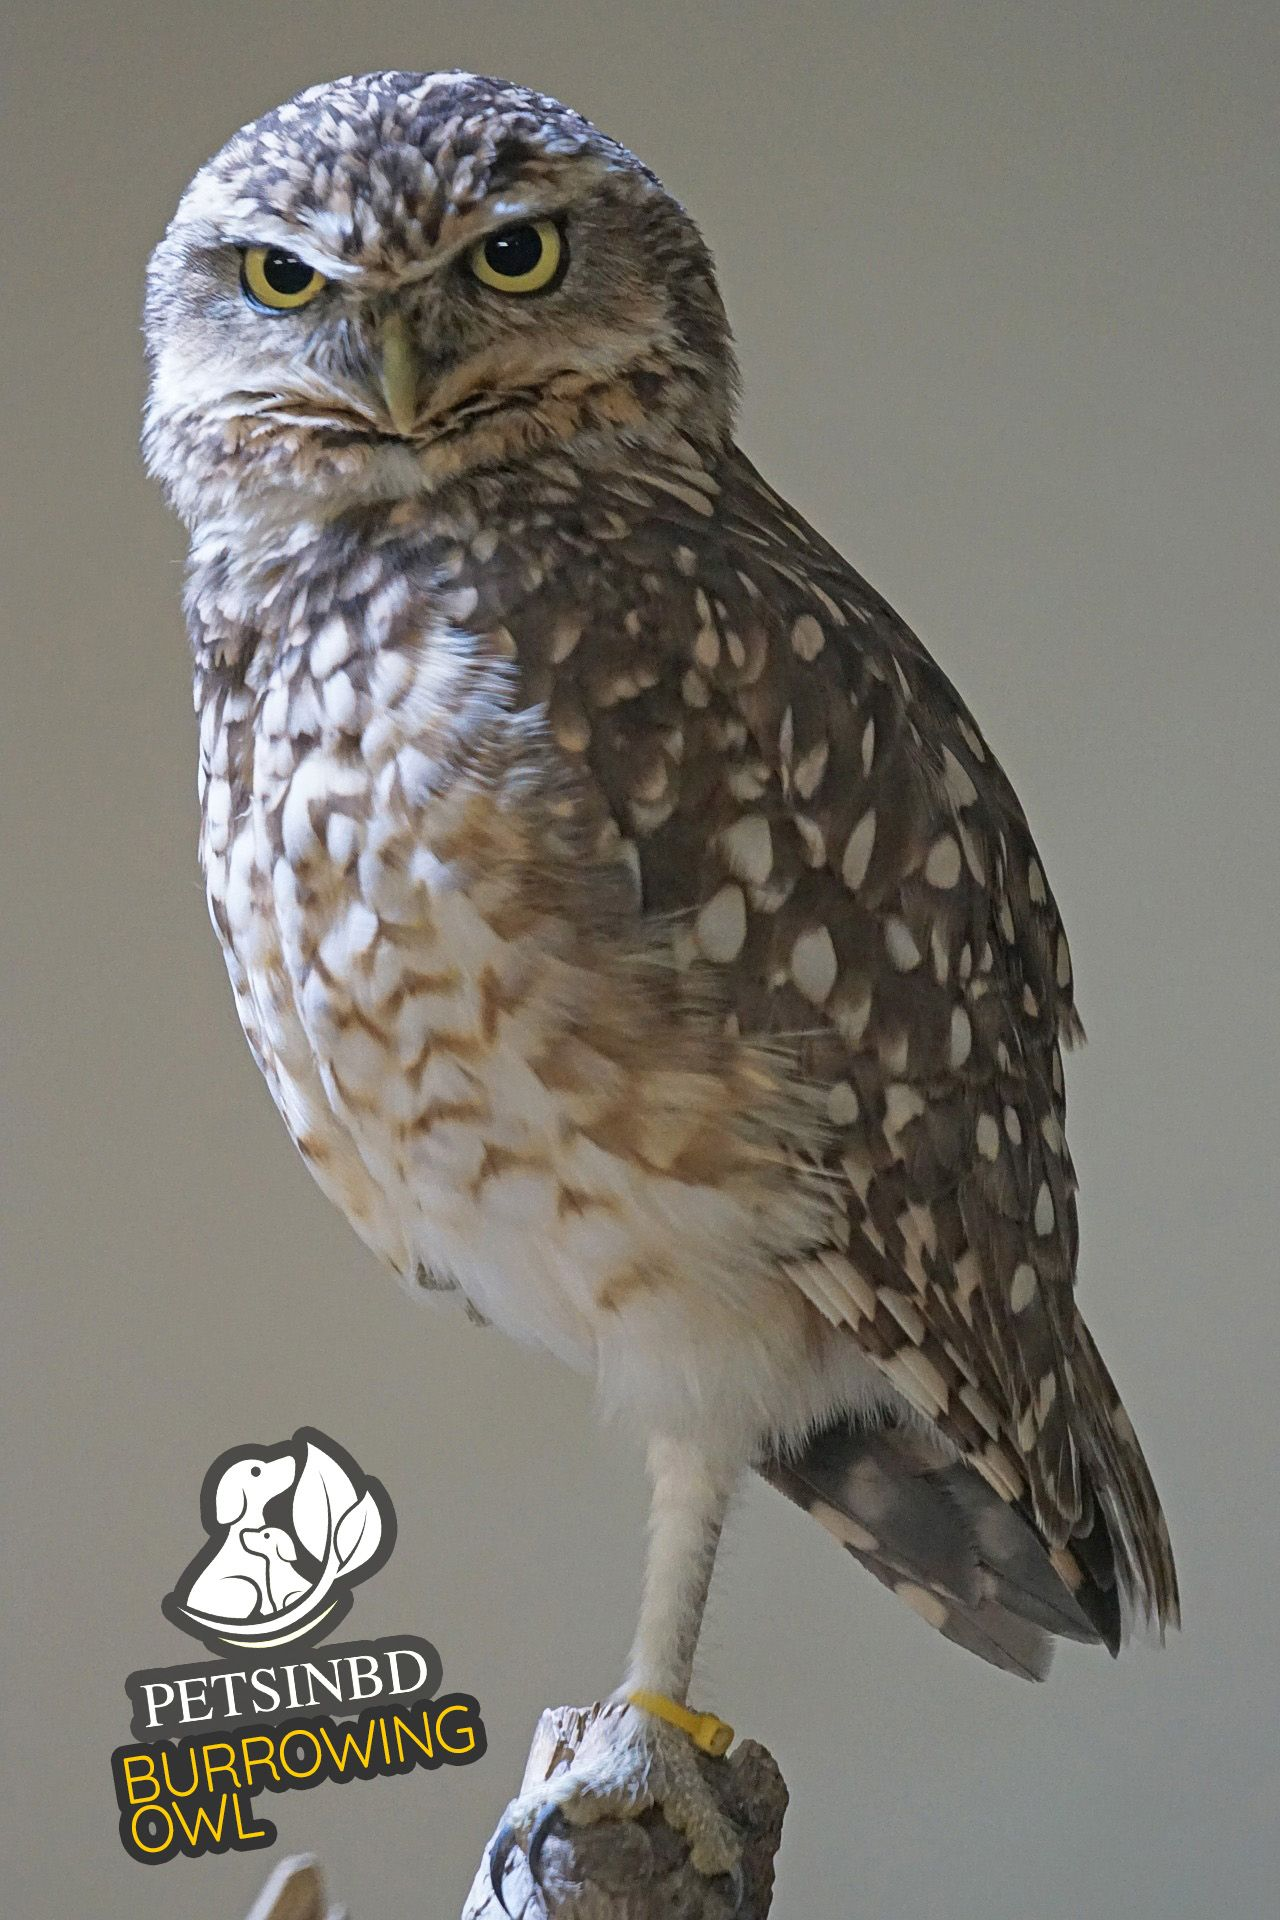 The burrowing owl can be found in North America and some